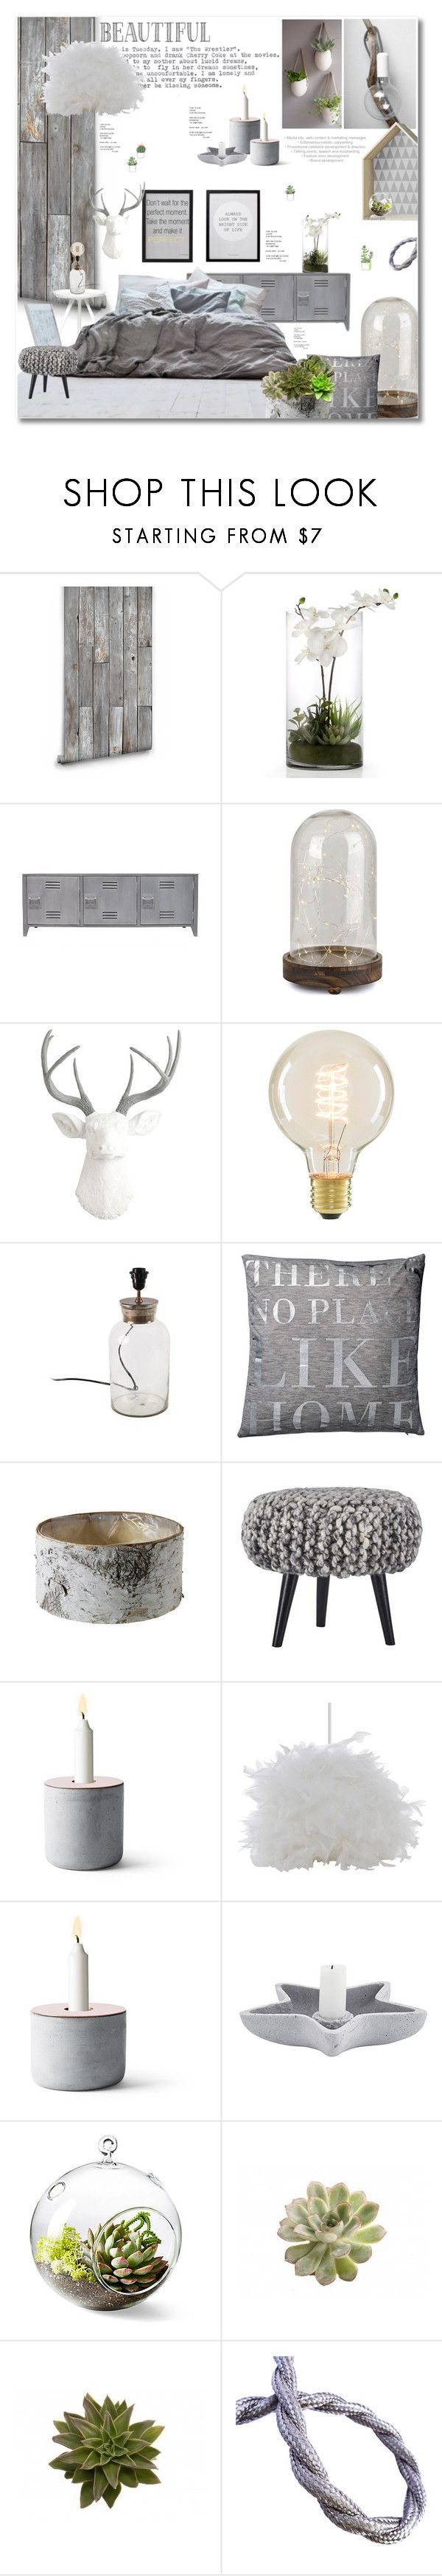 """Bedroom Dreams"" by dittestegemejer on Polyvore featuring interior, interiors, interior design, home, home decor, interior decorating, Milton & King, Bloomingville, House Doctor and Menu"